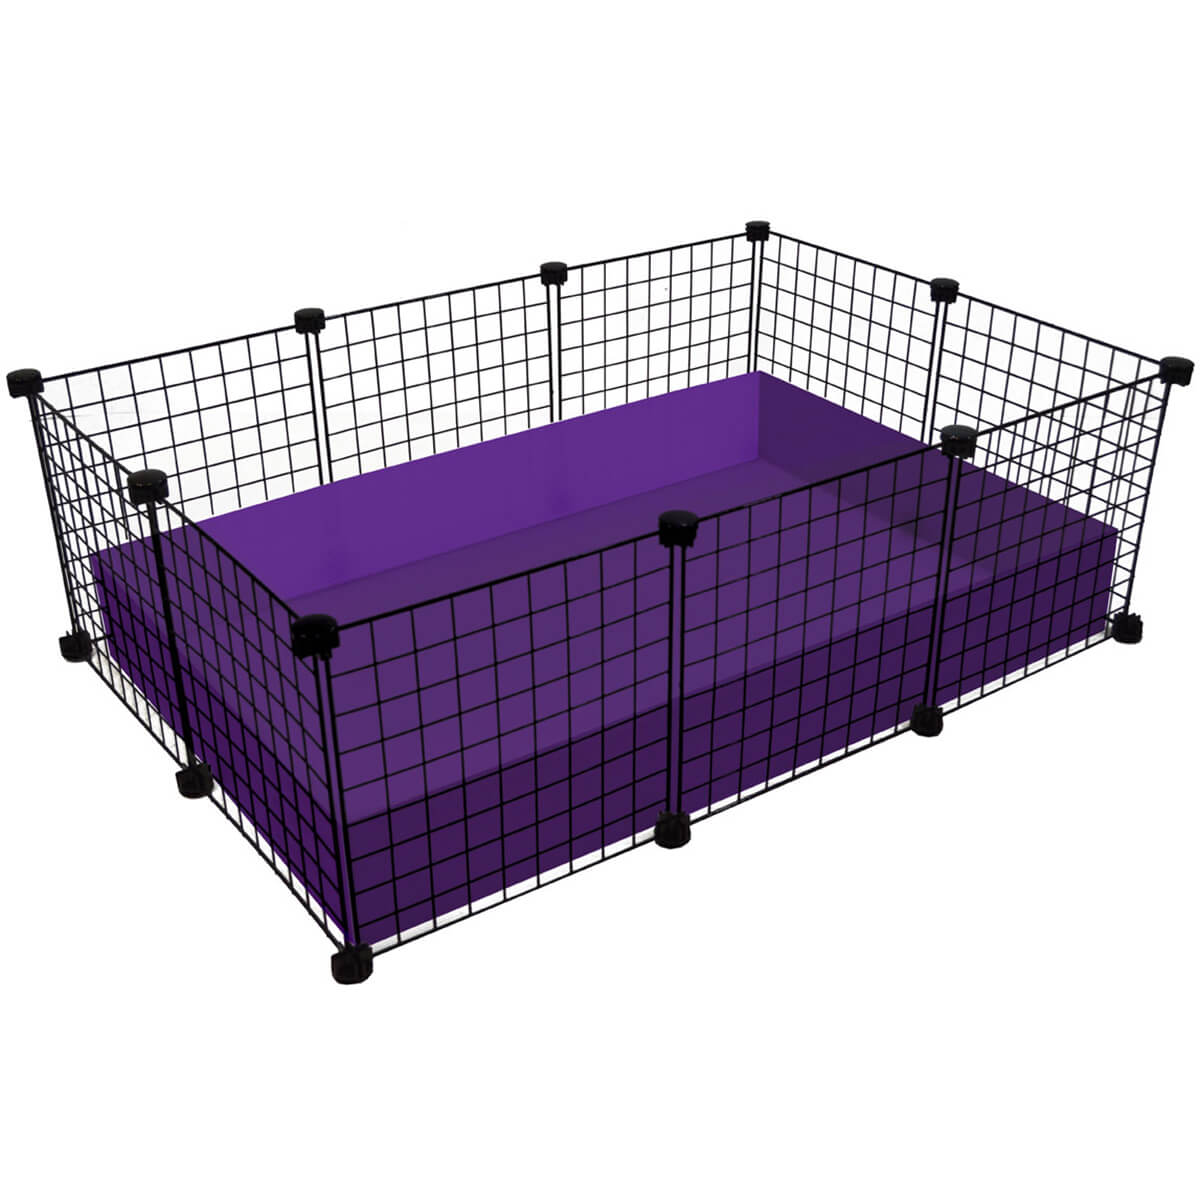 Small (2x3 Grid) C&C Cage for guinea pigs made by Cagetopia